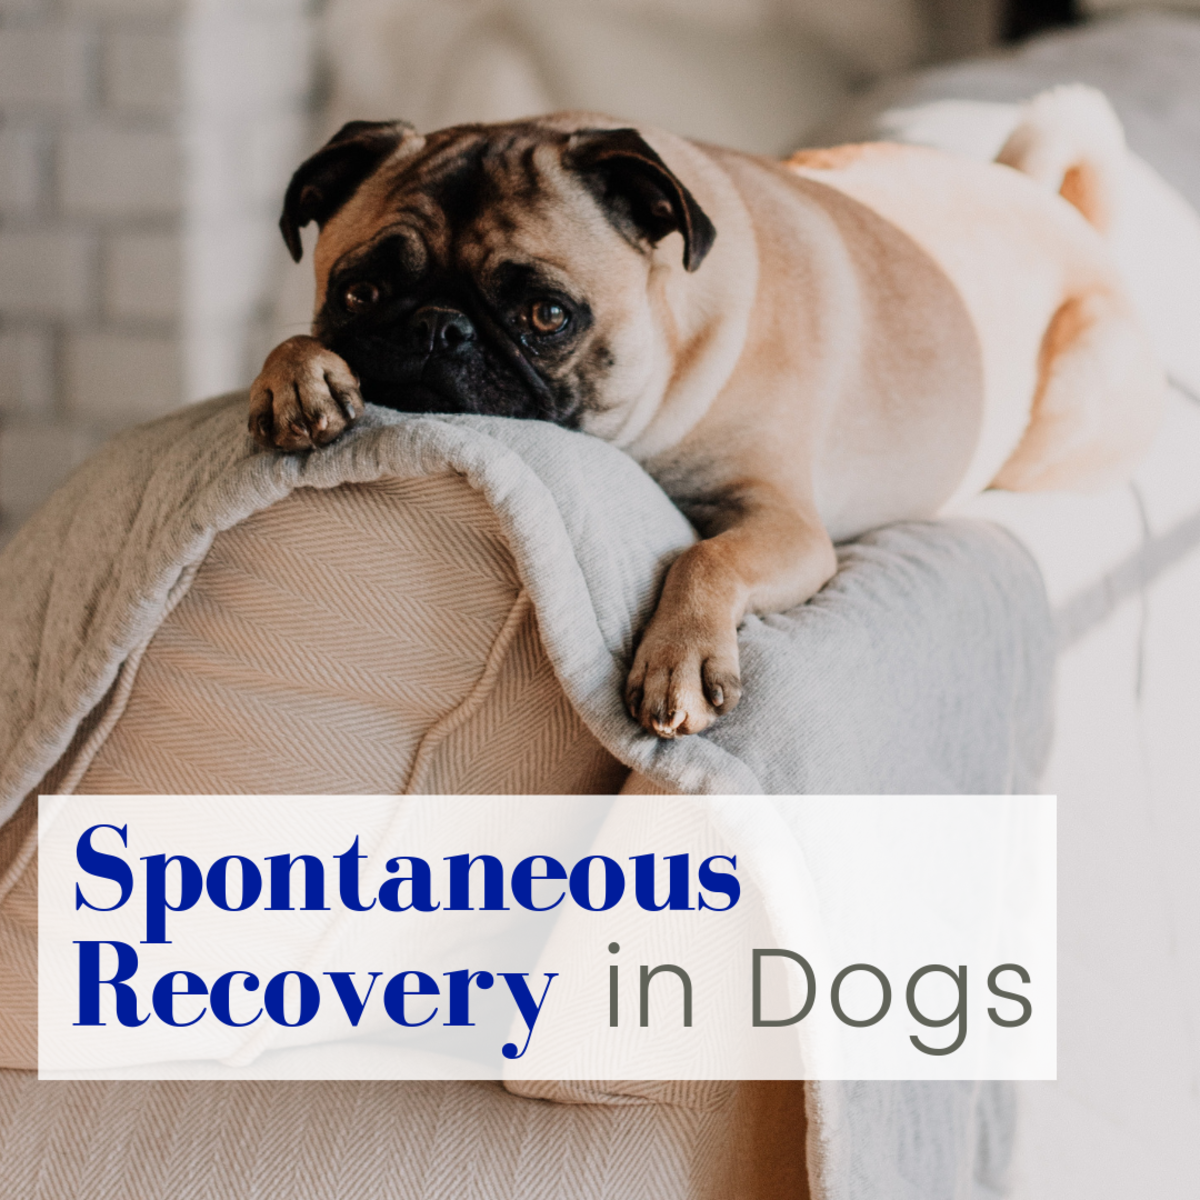 Spontaneous Recovery in Dogs